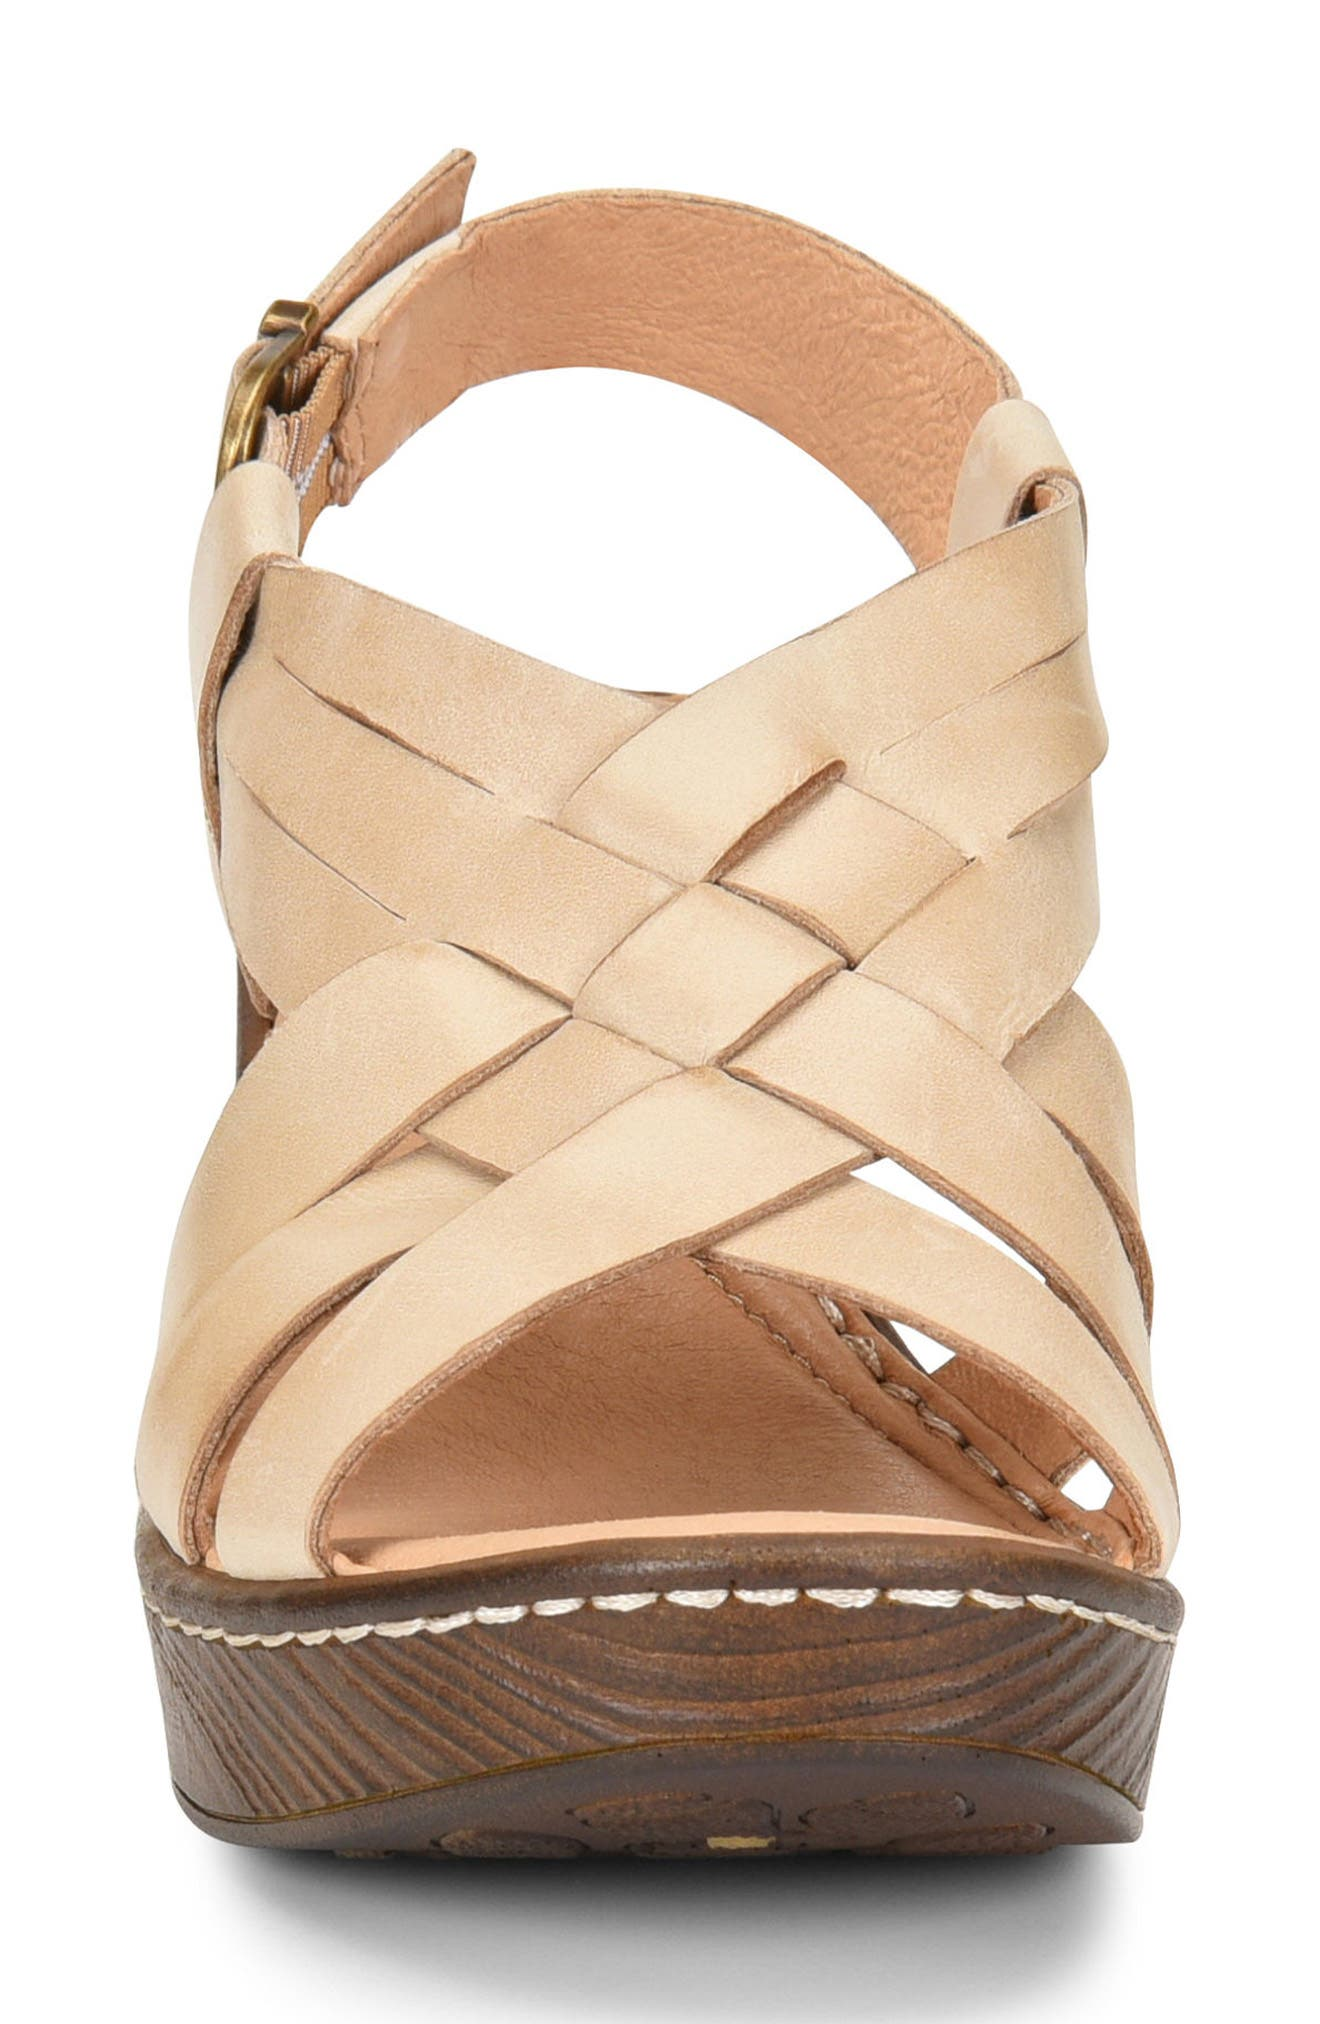 Crevalle Platform Sandal,                             Alternate thumbnail 4, color,                             LIGHT TAN LEATHER